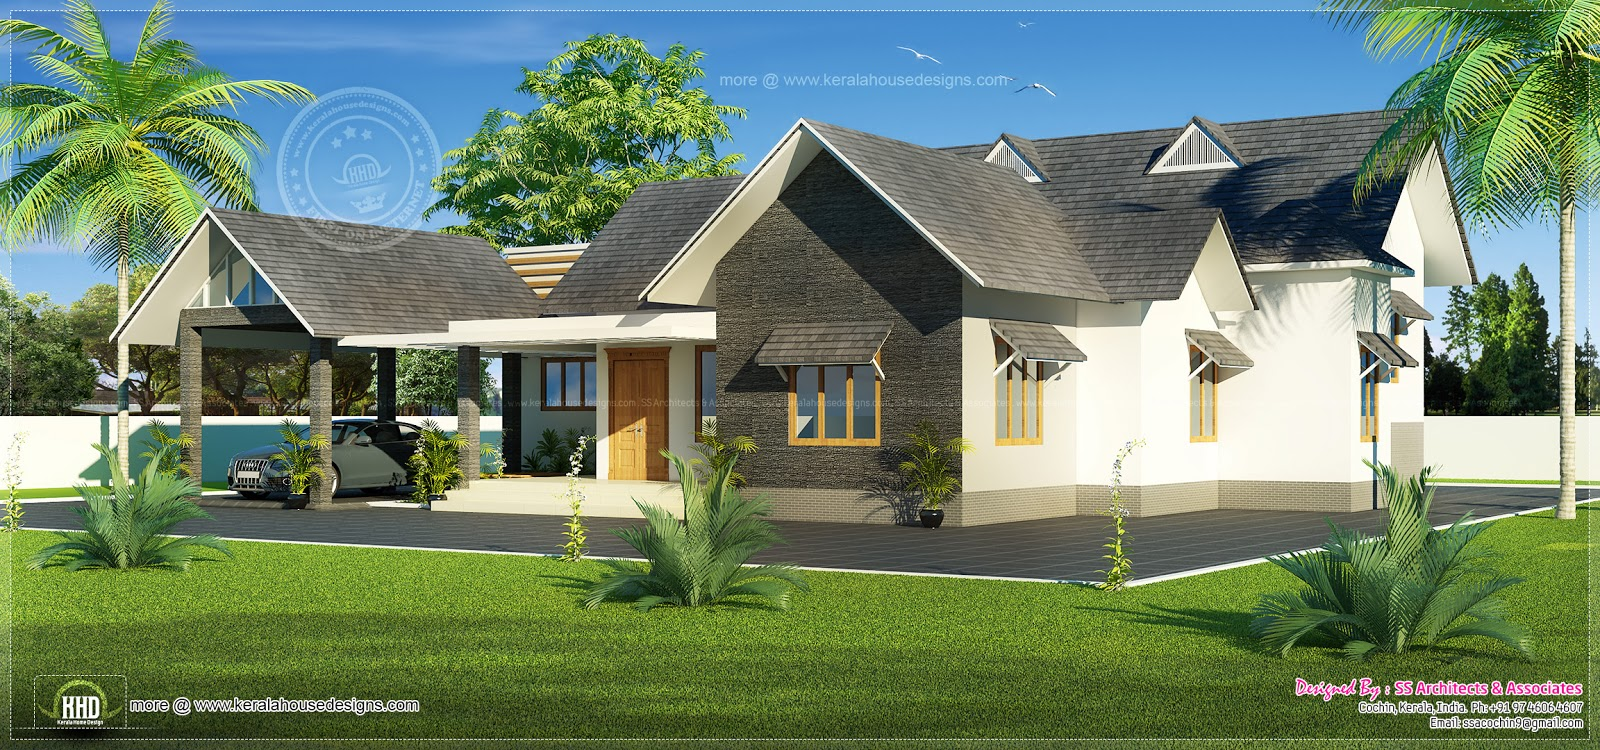 Bungalow House Design In 2051 Kerala Home Design And Floor